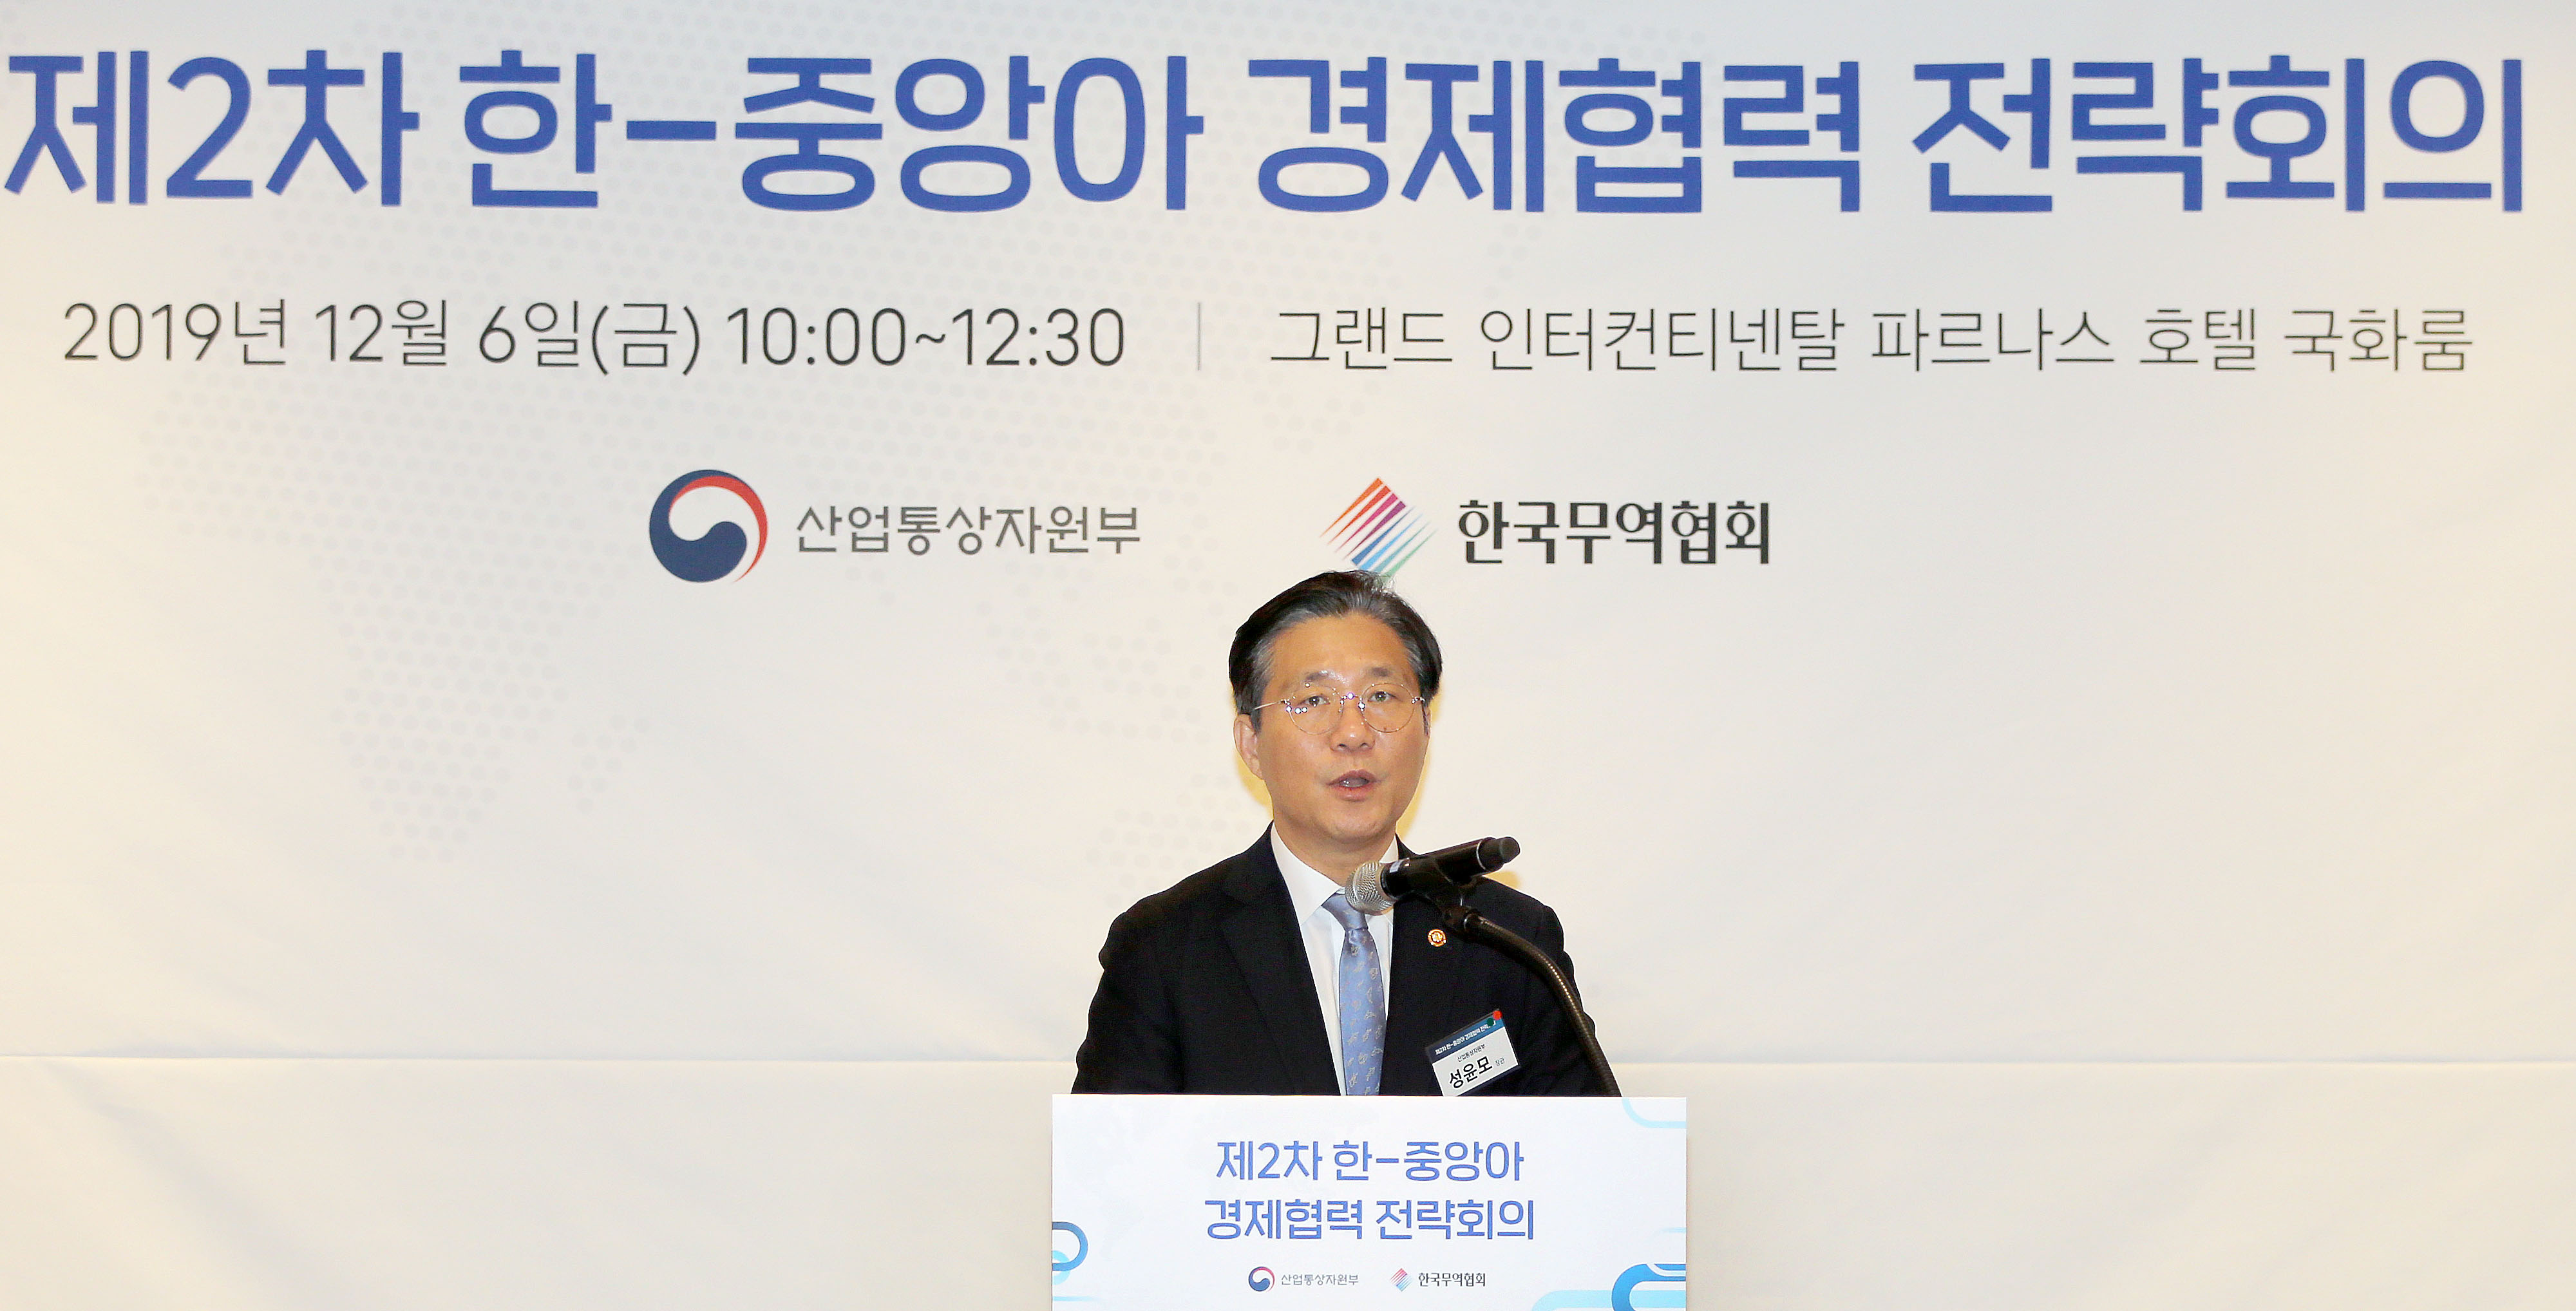 Minister Sung attends 2nd Korea-Central Asia Economic Cooperation Strategy Meeting